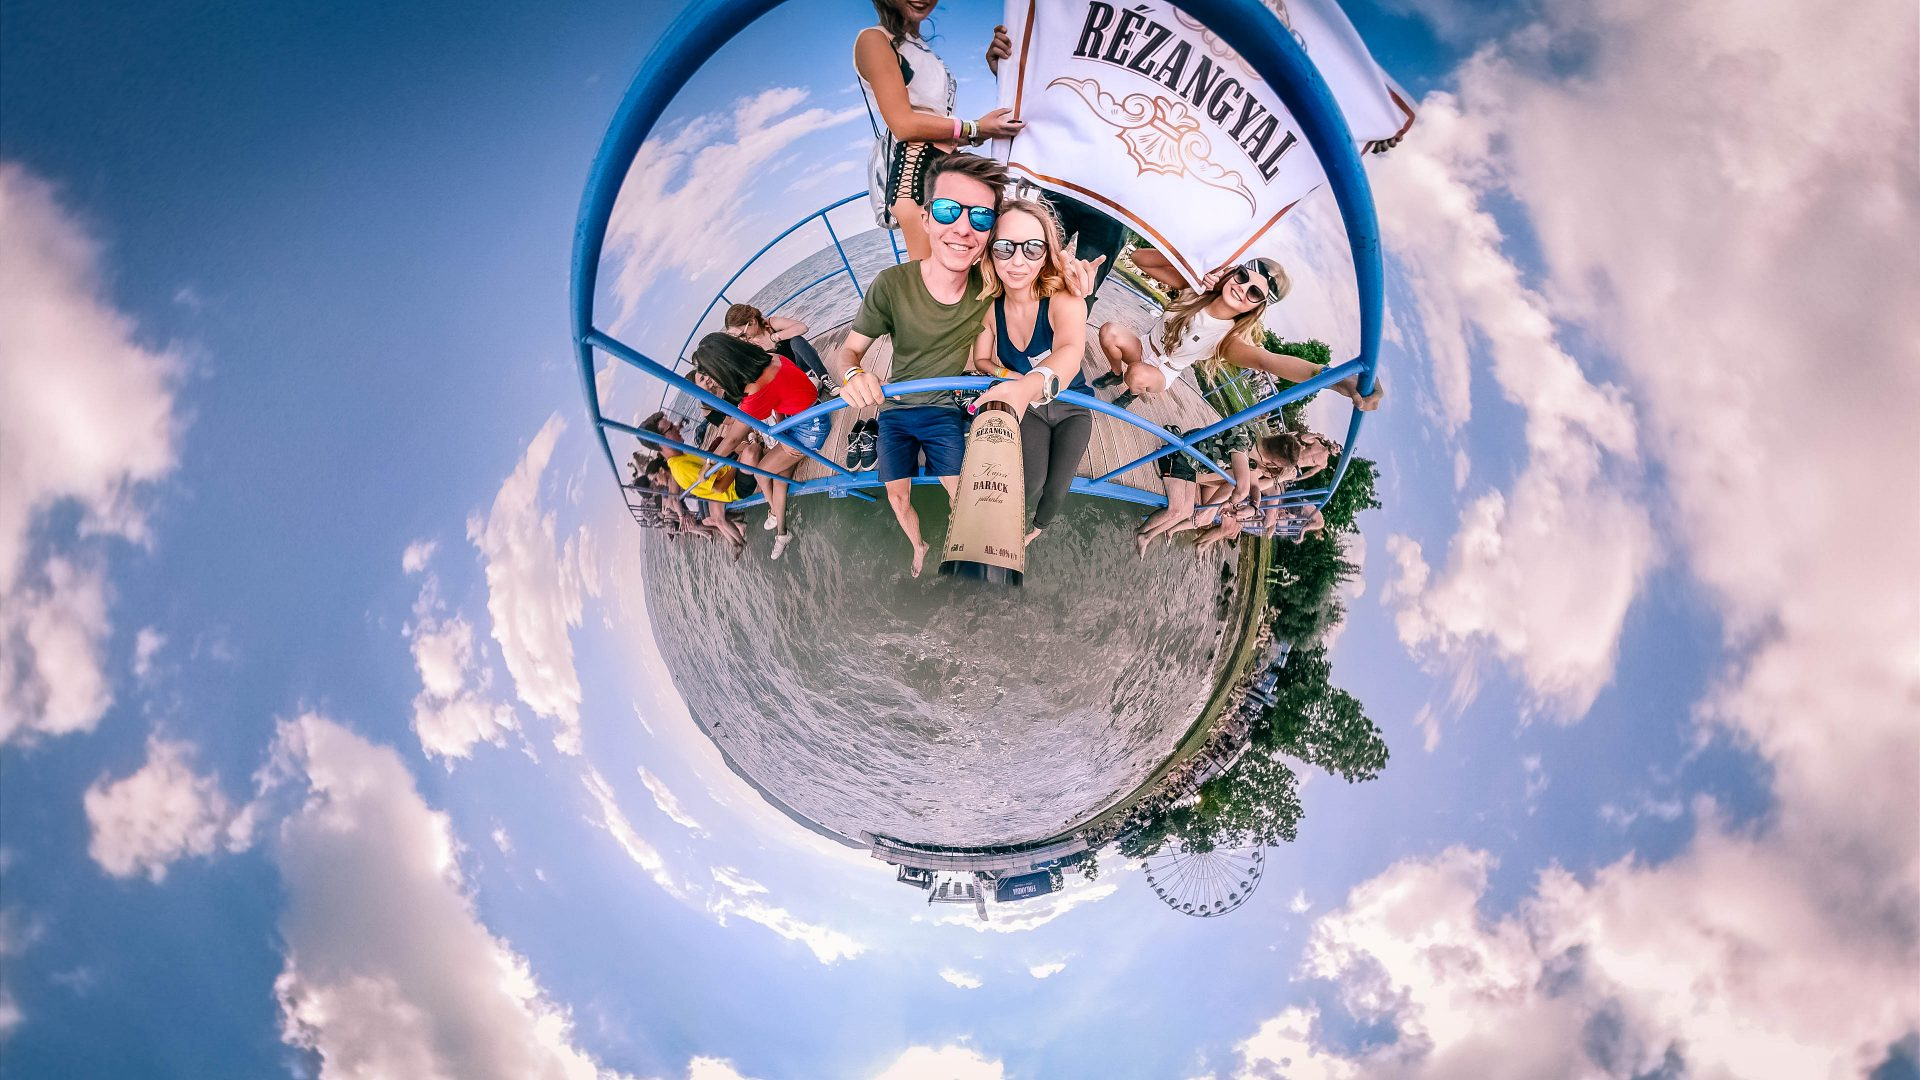 Rézangyal – Tiny World – The best festival campaign by HEYTHERE agency